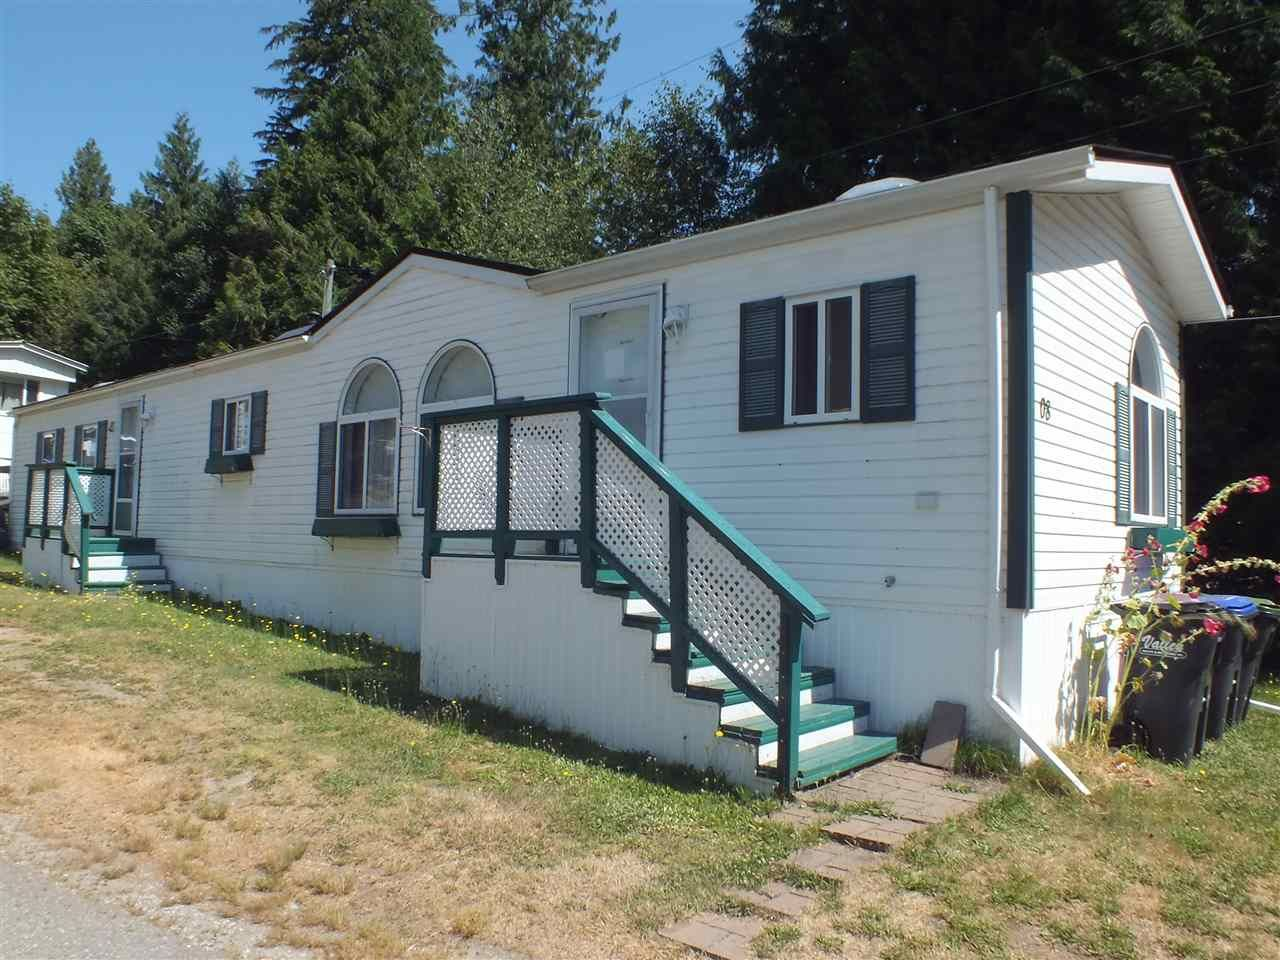 Main Photo: 8 22885 TRANS CANADA Highway in Hope: Hope Center Manufactured Home for sale : MLS®# R2482859